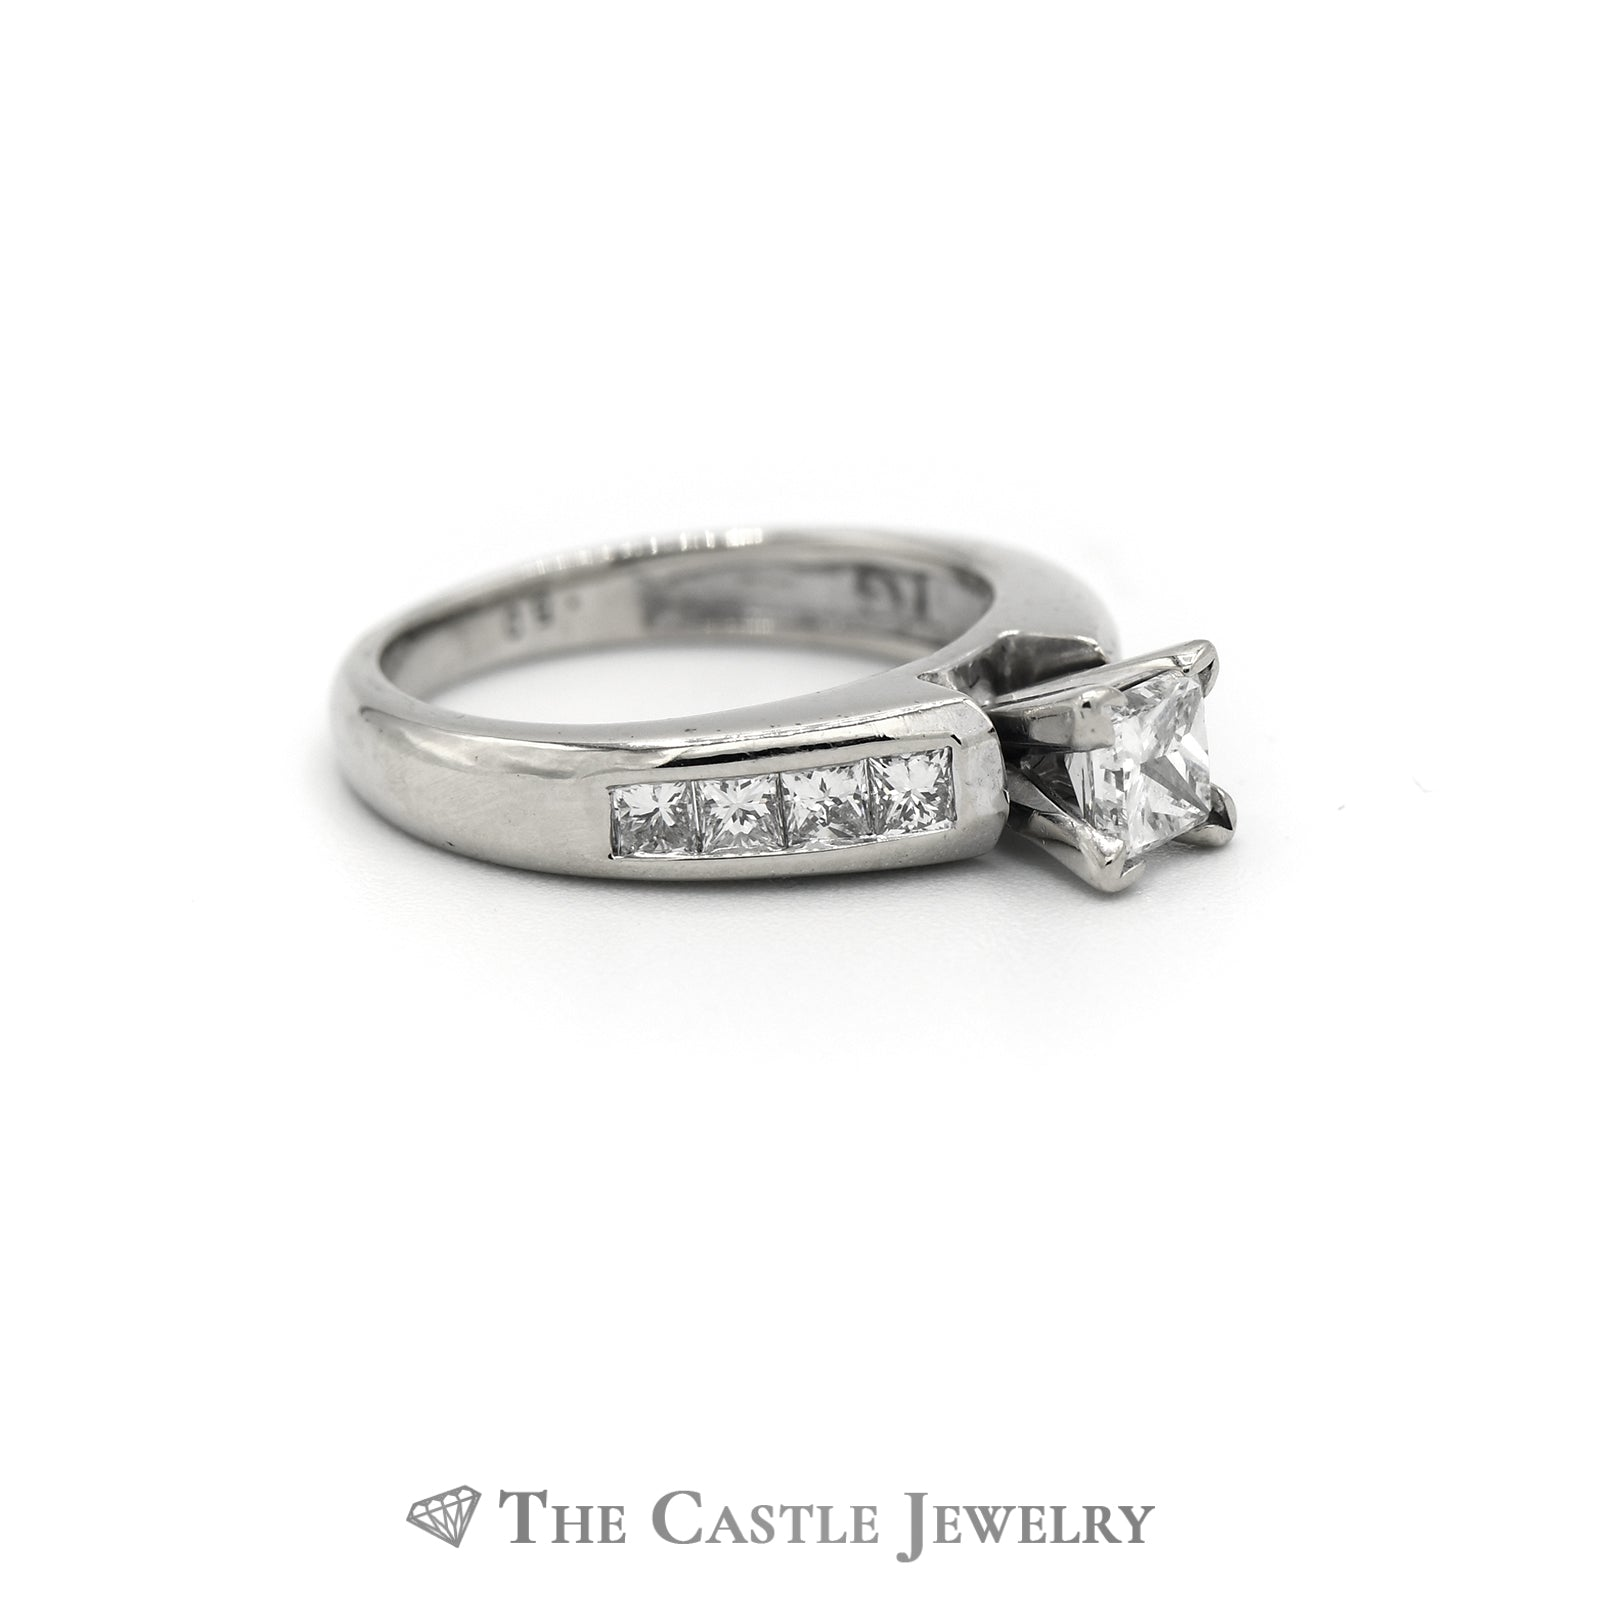 Princess Cut Diamond Engagement Ring 1cttw with Channel Set Mounting in 14K White Gold-2